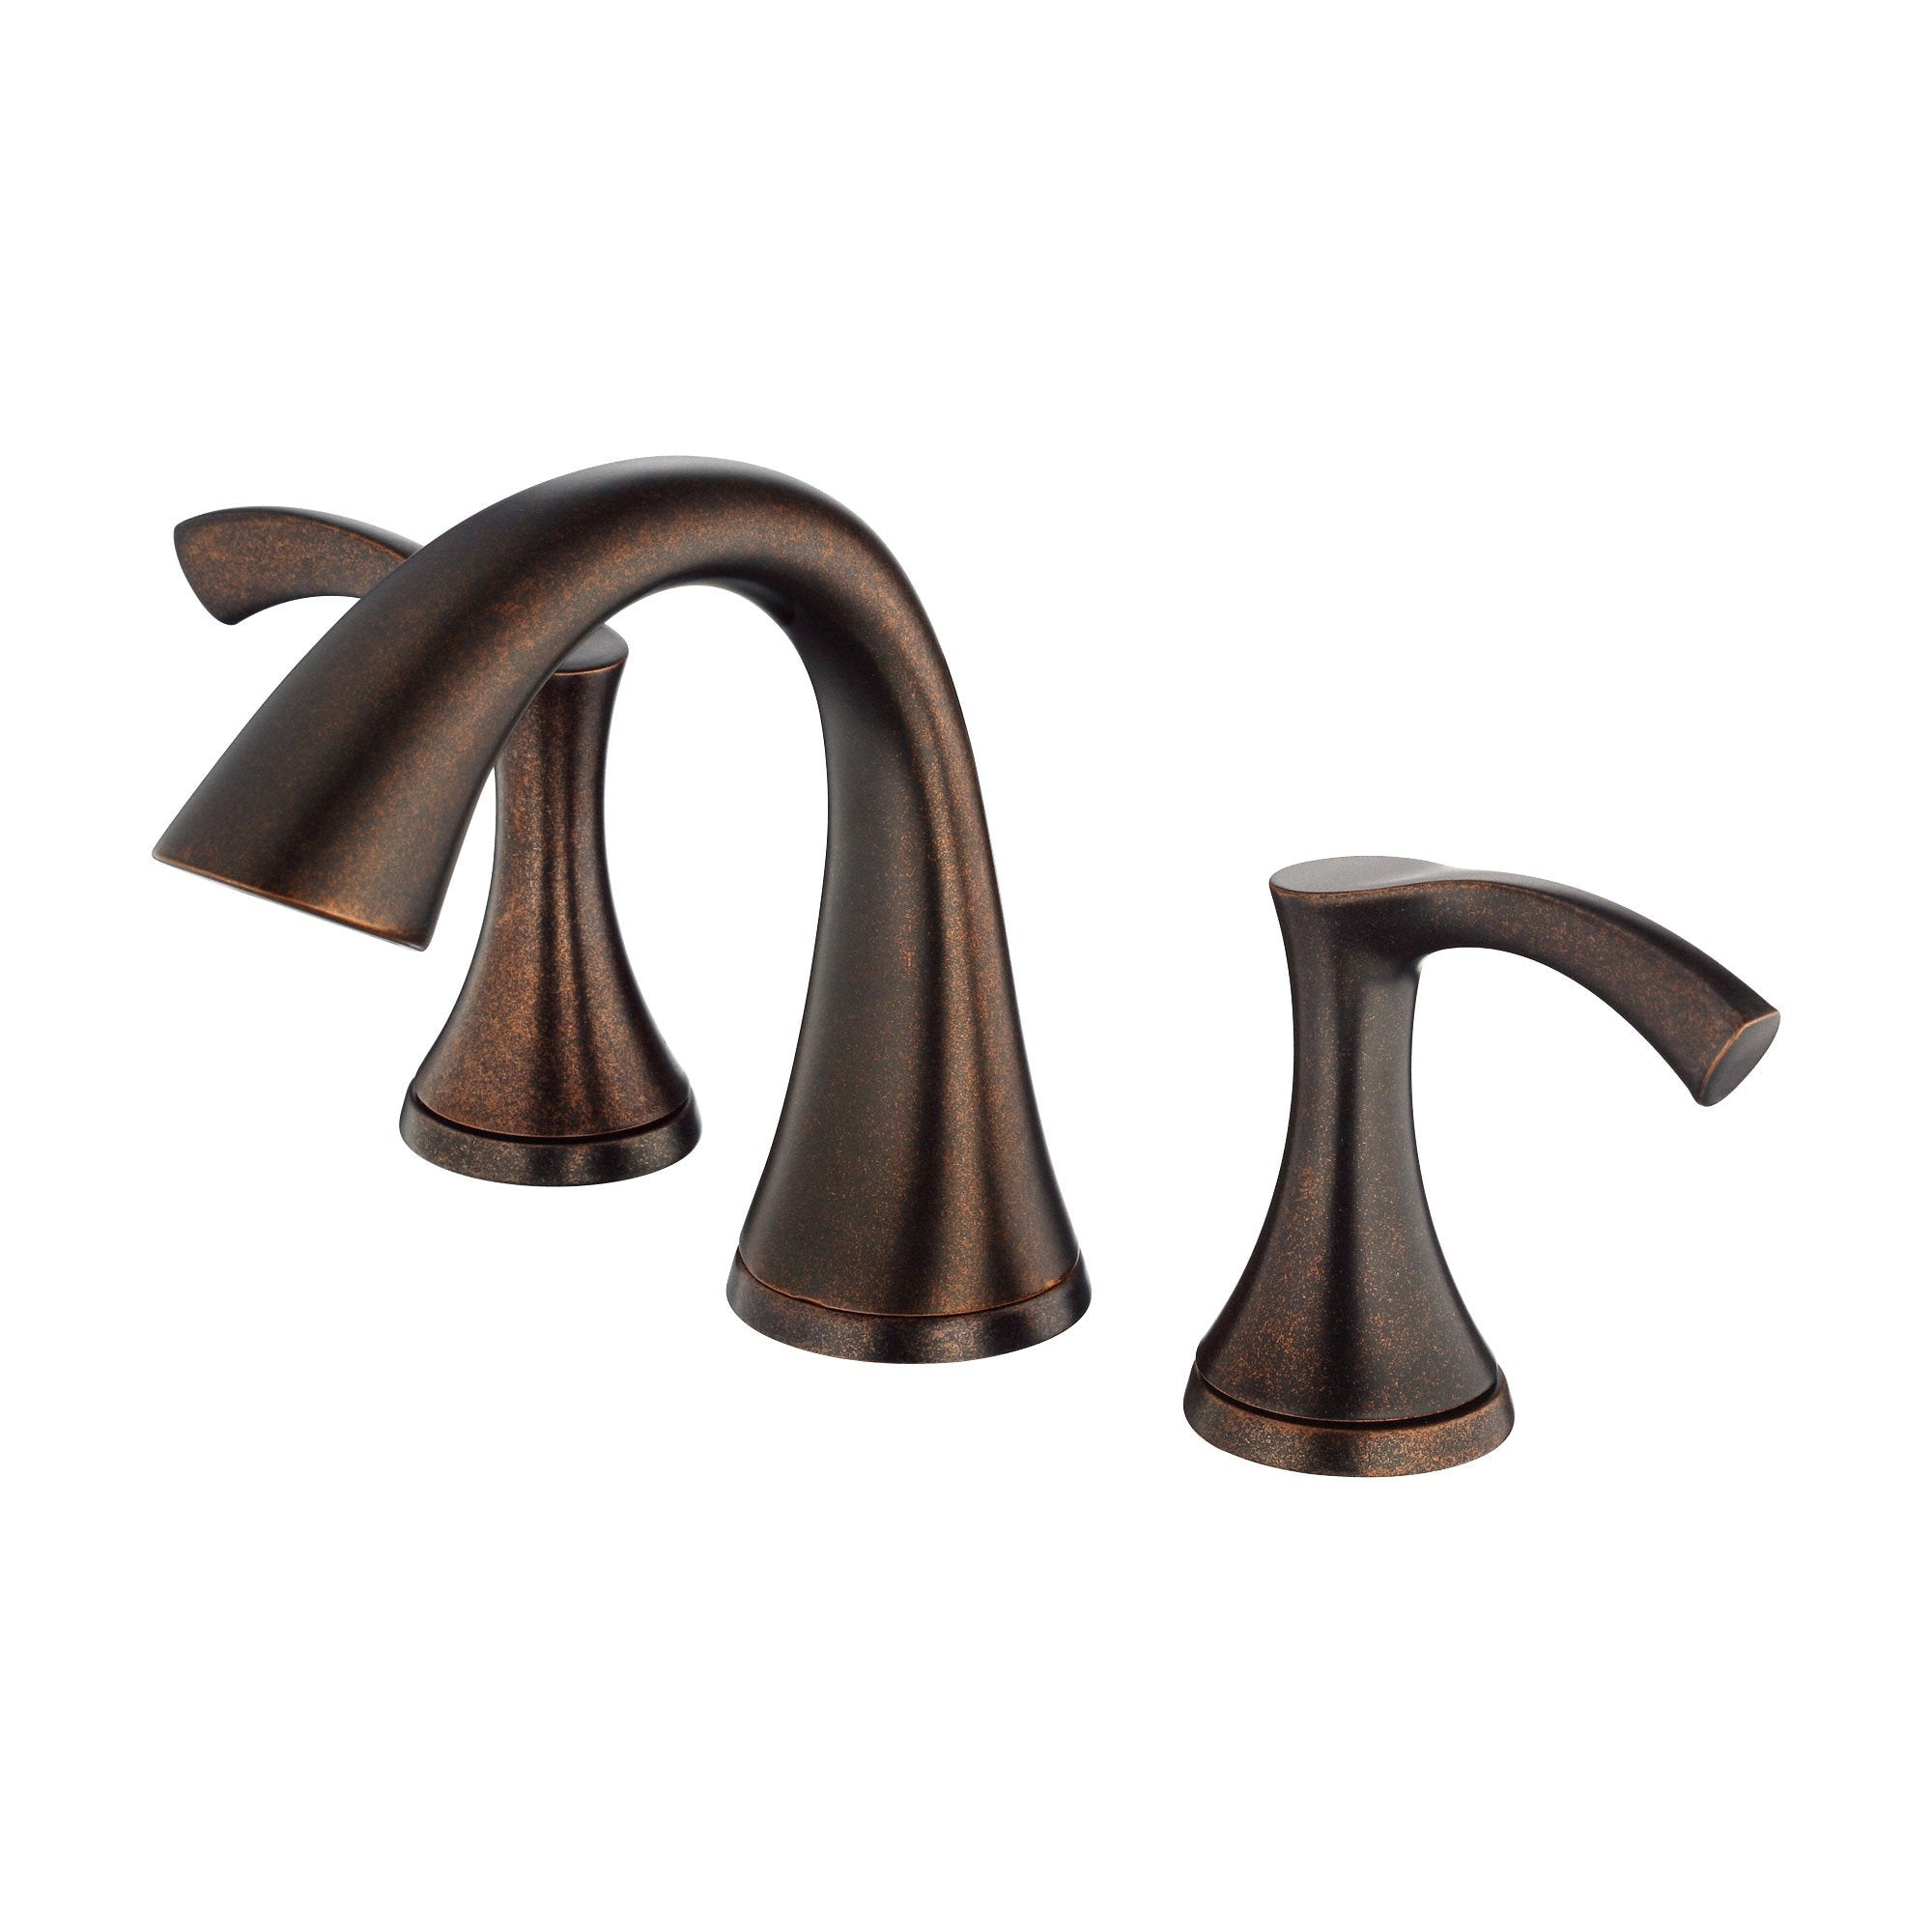 Danze Antioch Tumbled Bronze Two Handle Widespread Bathroom Sink Faucet